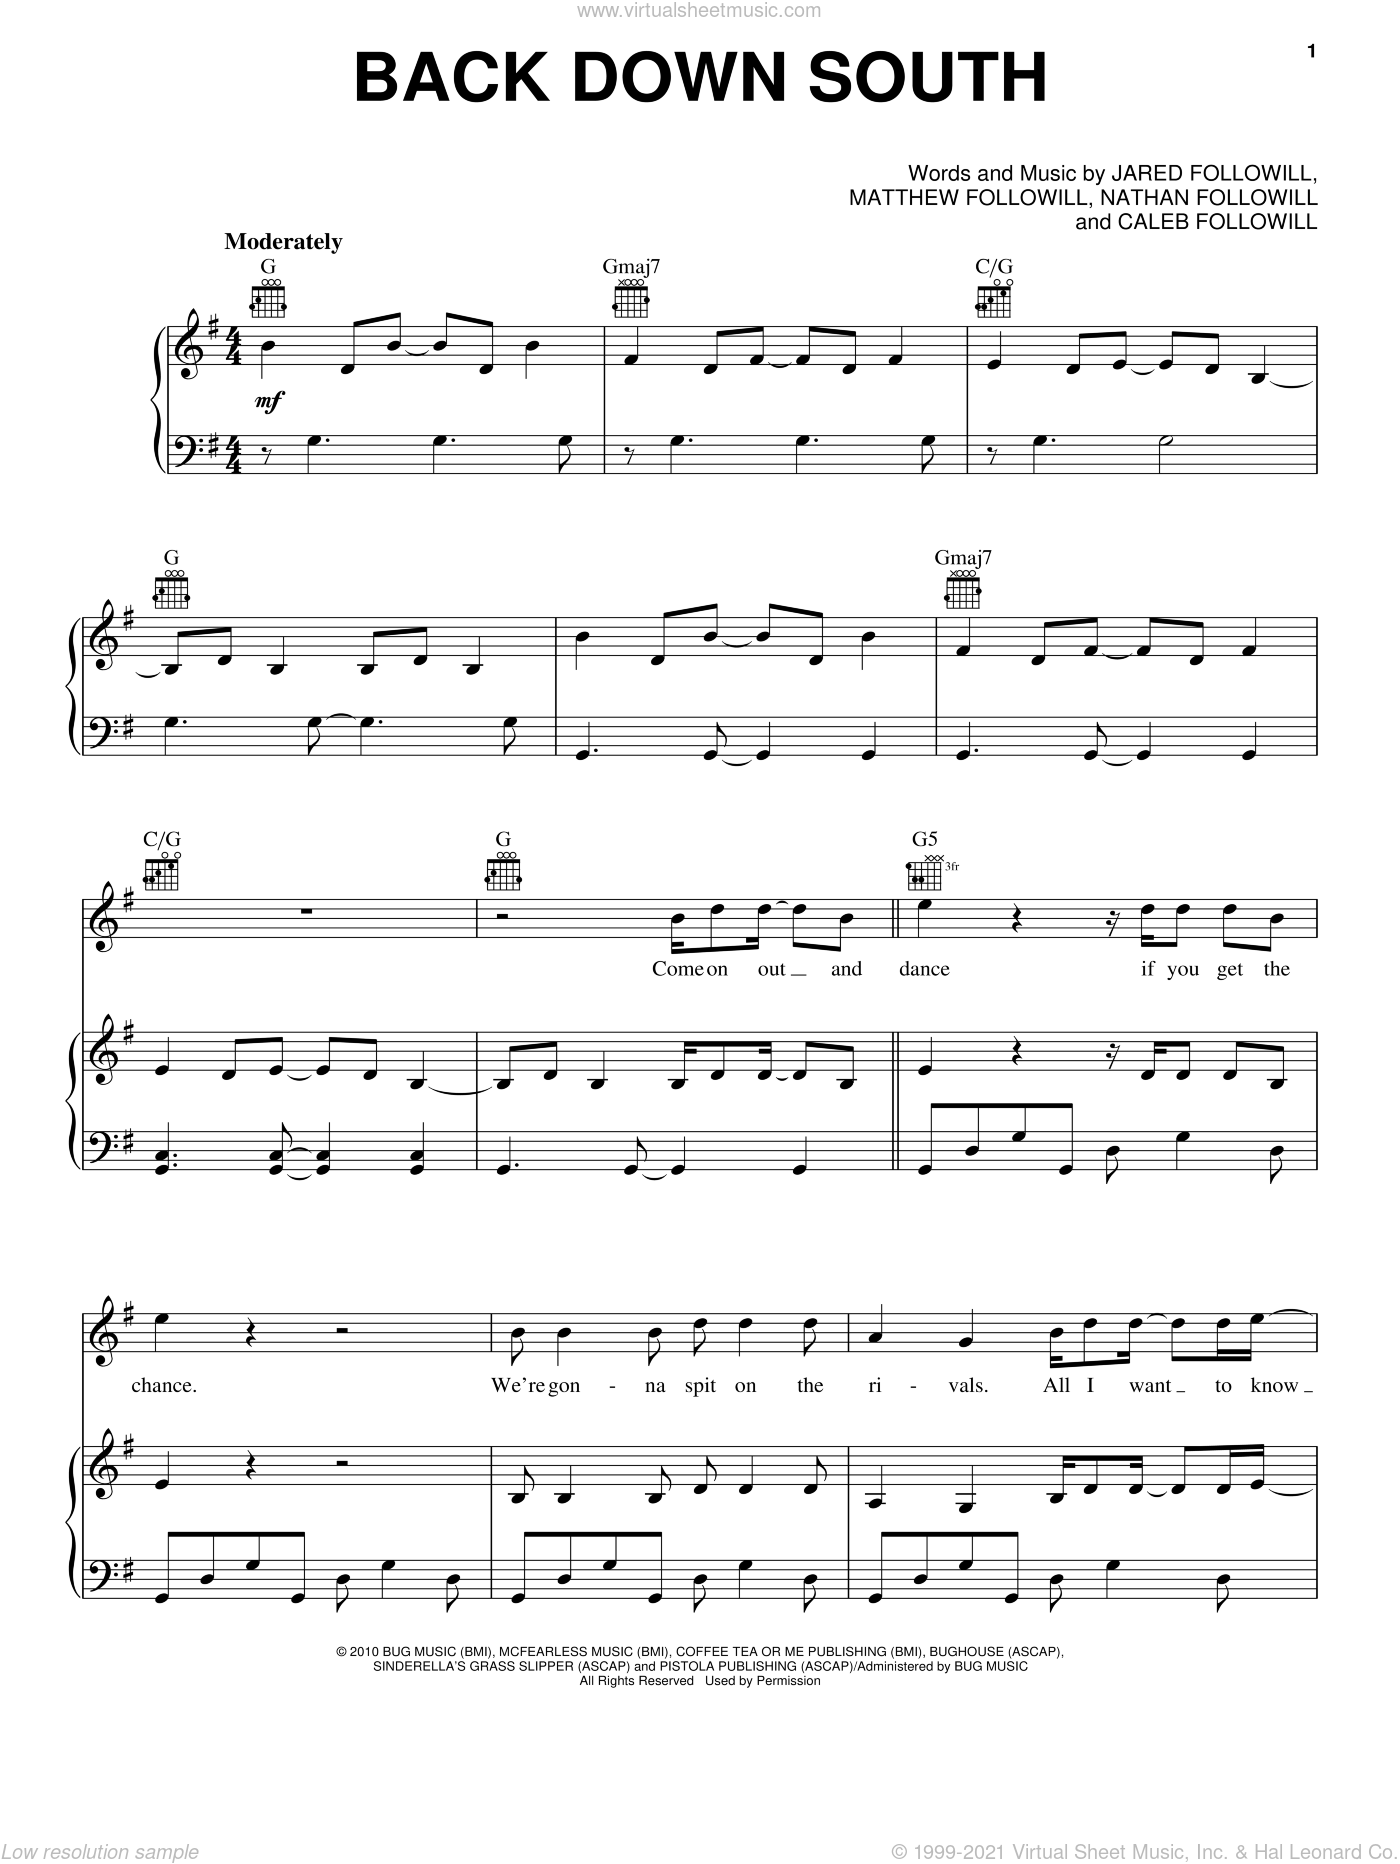 Back Down South sheet music for voice, piano or guitar by Nathan Followill